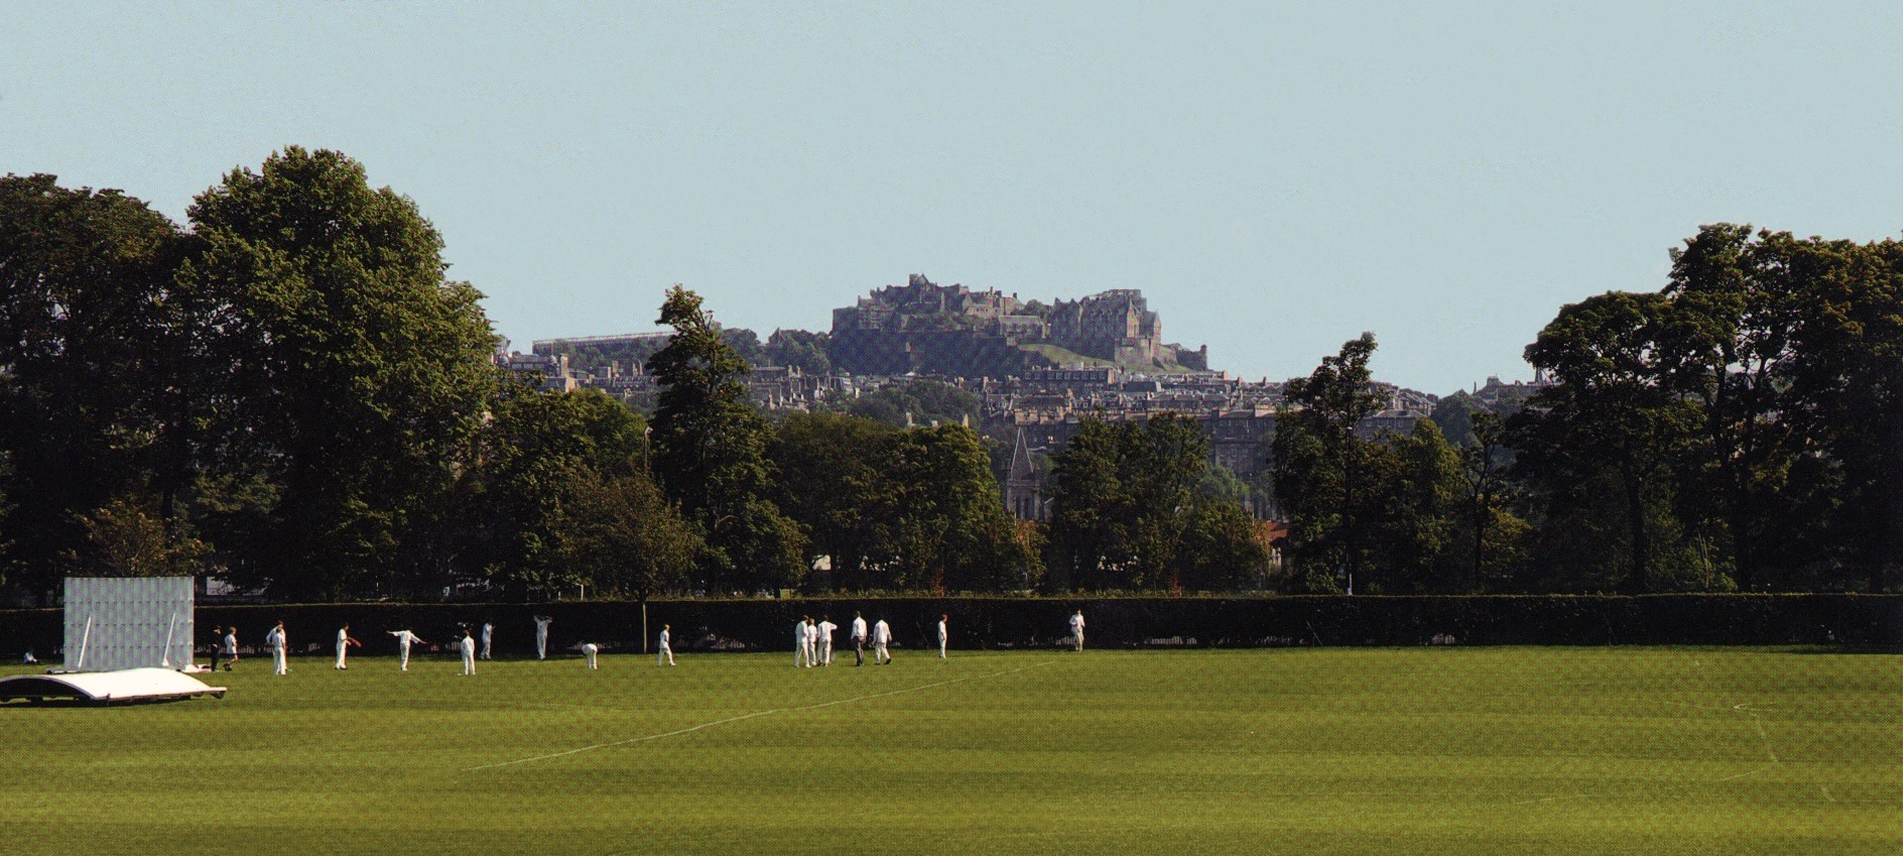 Edinburgh Castle from New Field.